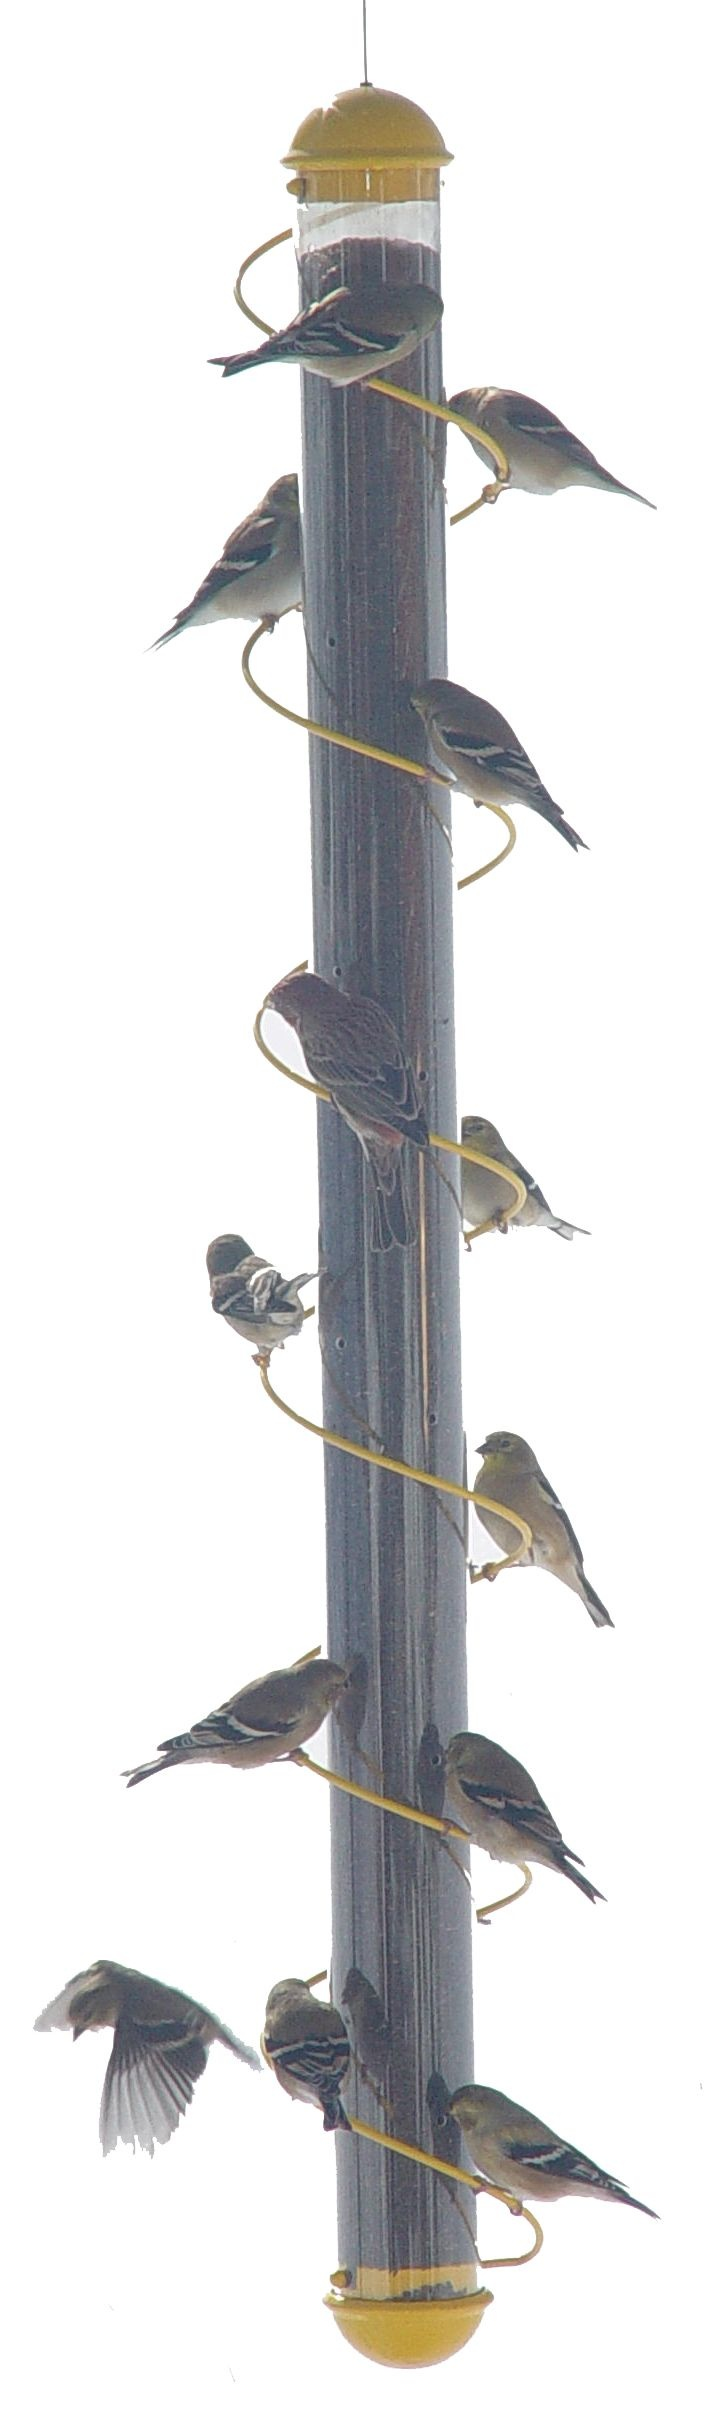 california diego on late feeder stock summer lesser psaltria carduelis san thistle goldfinches photo feeders